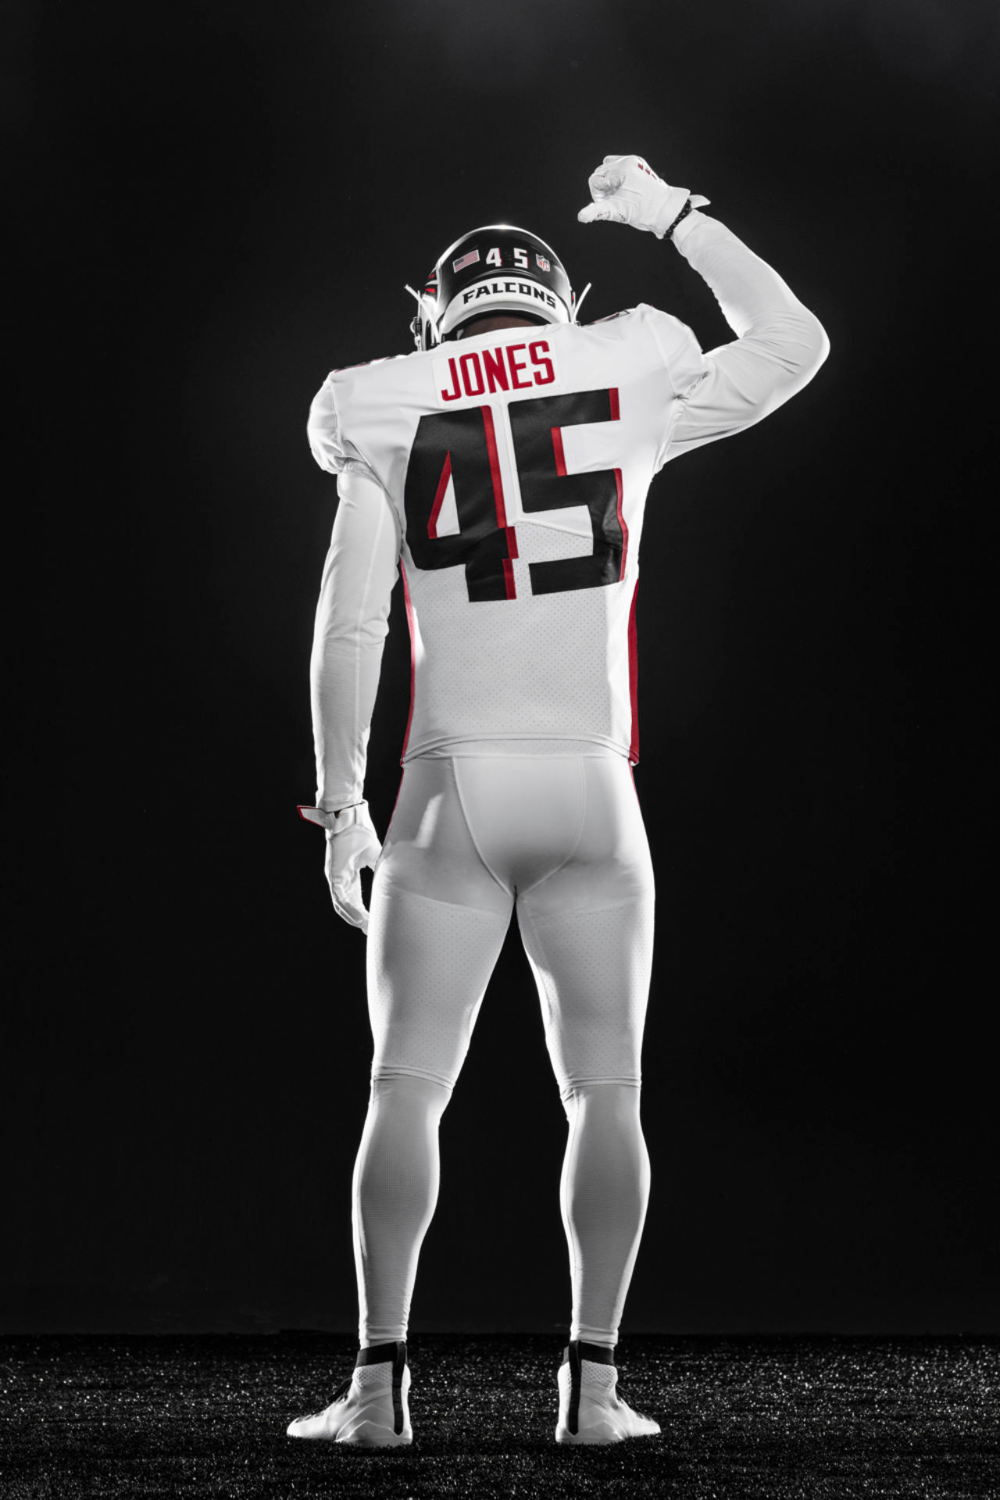 Atlanta Falcons New Uniforms Revealed Nel 2020 Notizie